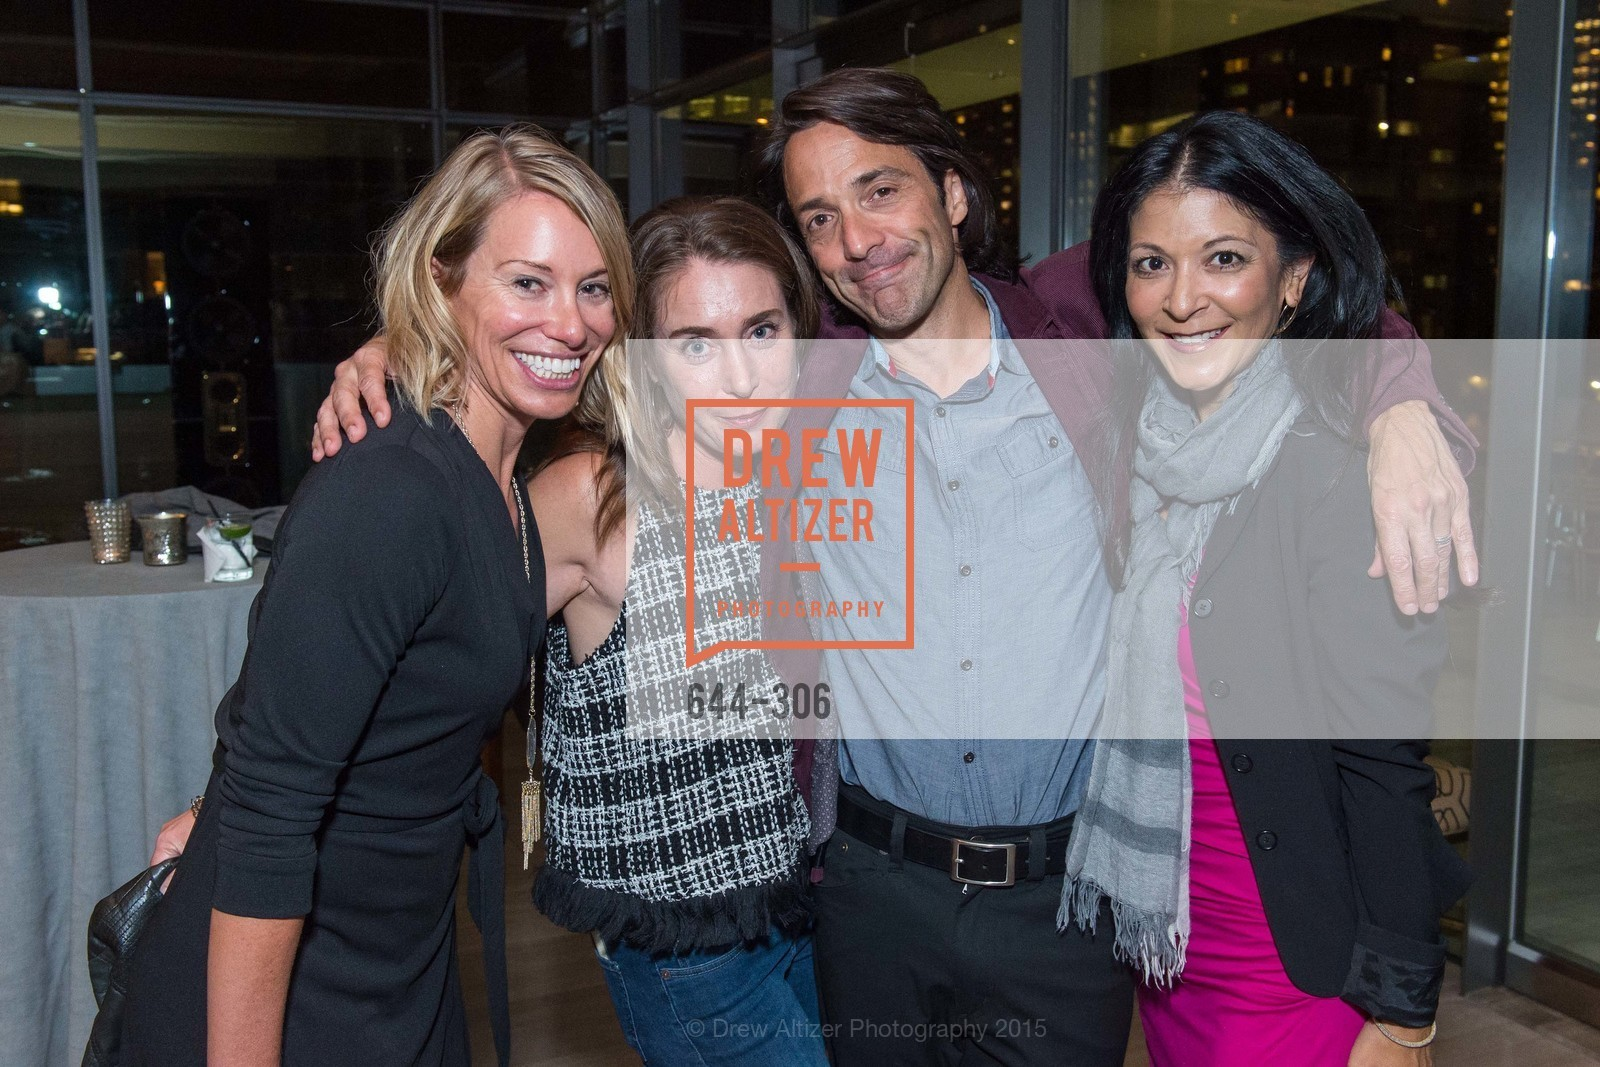 Mary Magnani, Kirsten Maynard, Michael Celiceo, Midori Lawler, Sparkpr's Annual Rooftop Soirée, The Battery Penthouse, September 22nd, 2015,Drew Altizer, Drew Altizer Photography, full-service agency, private events, San Francisco photographer, photographer california